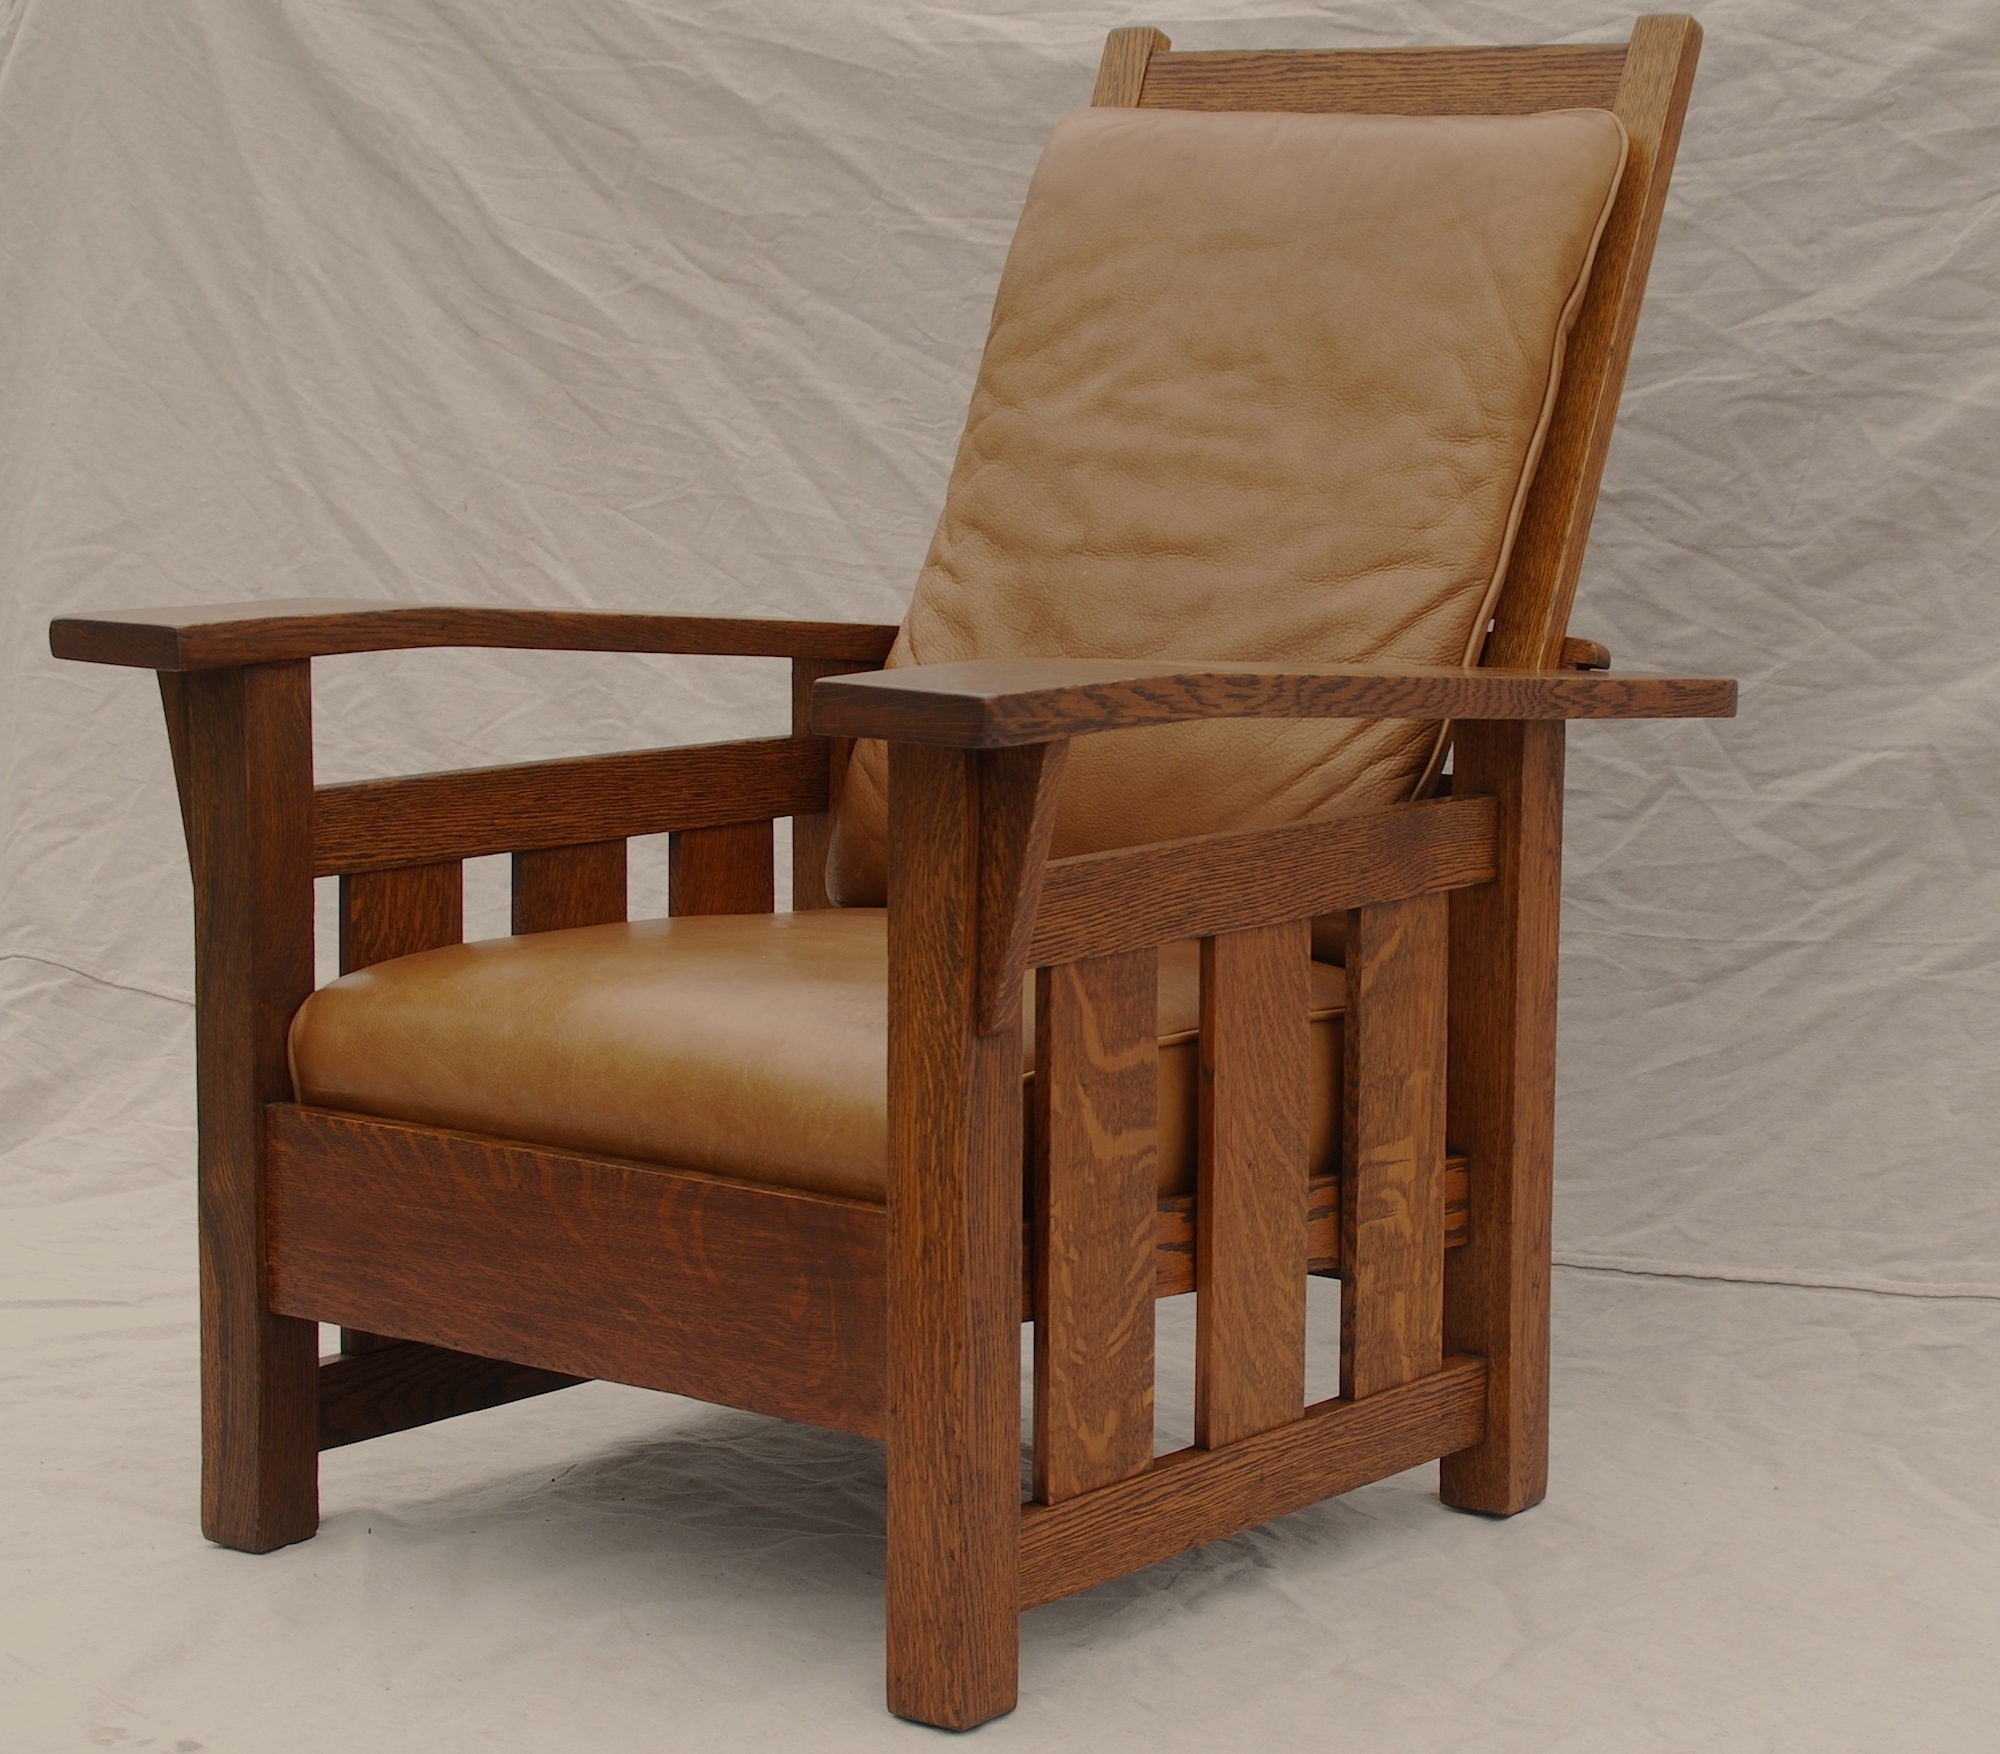 Current Voorhees Craftsman Mission Oak Furniture – Stickley Era Quaint Art In Craftsman Arm Chairs (View 12 of 20)